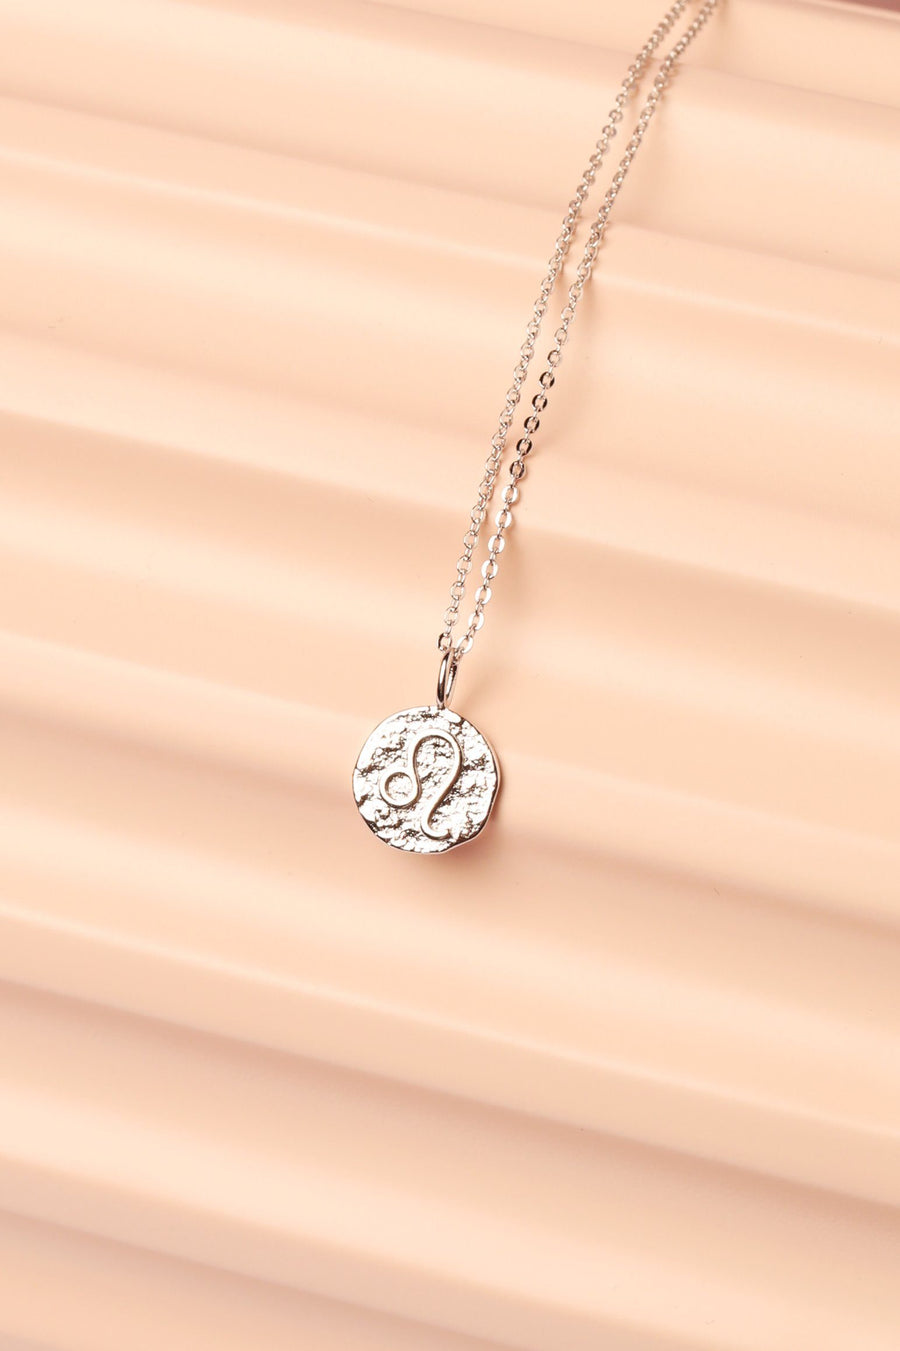 Silver Zodiac Charm Necklace Necklace Mulberry & Grand Leo